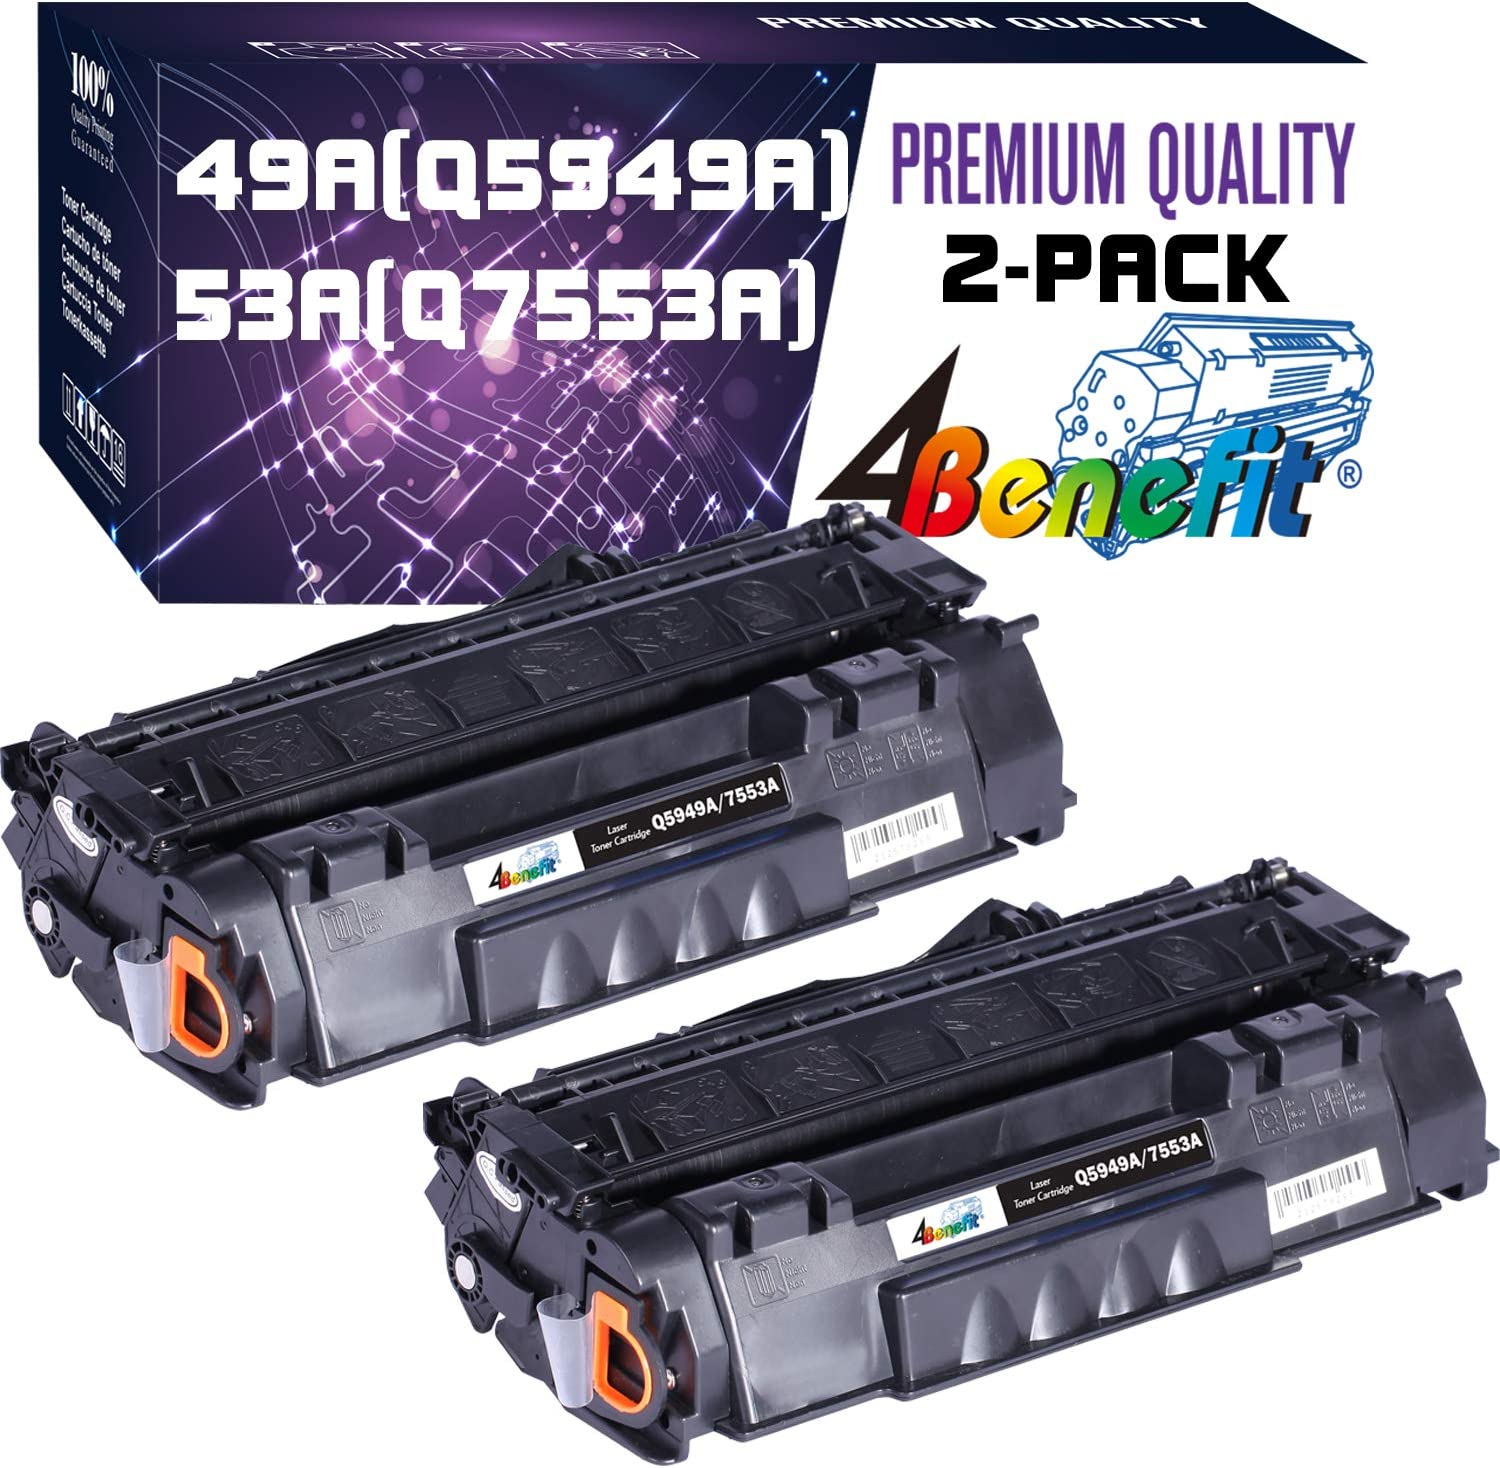 (1-Pack, Black) Compatible 49A 53A Toner Cartridge Q7553A Q5949A Used for HP Laserjet 1320 1320n P2015dn P2015 P2015n 3390 3392 1160 P2014 M2727nf MFP Printer, by 4Benefit